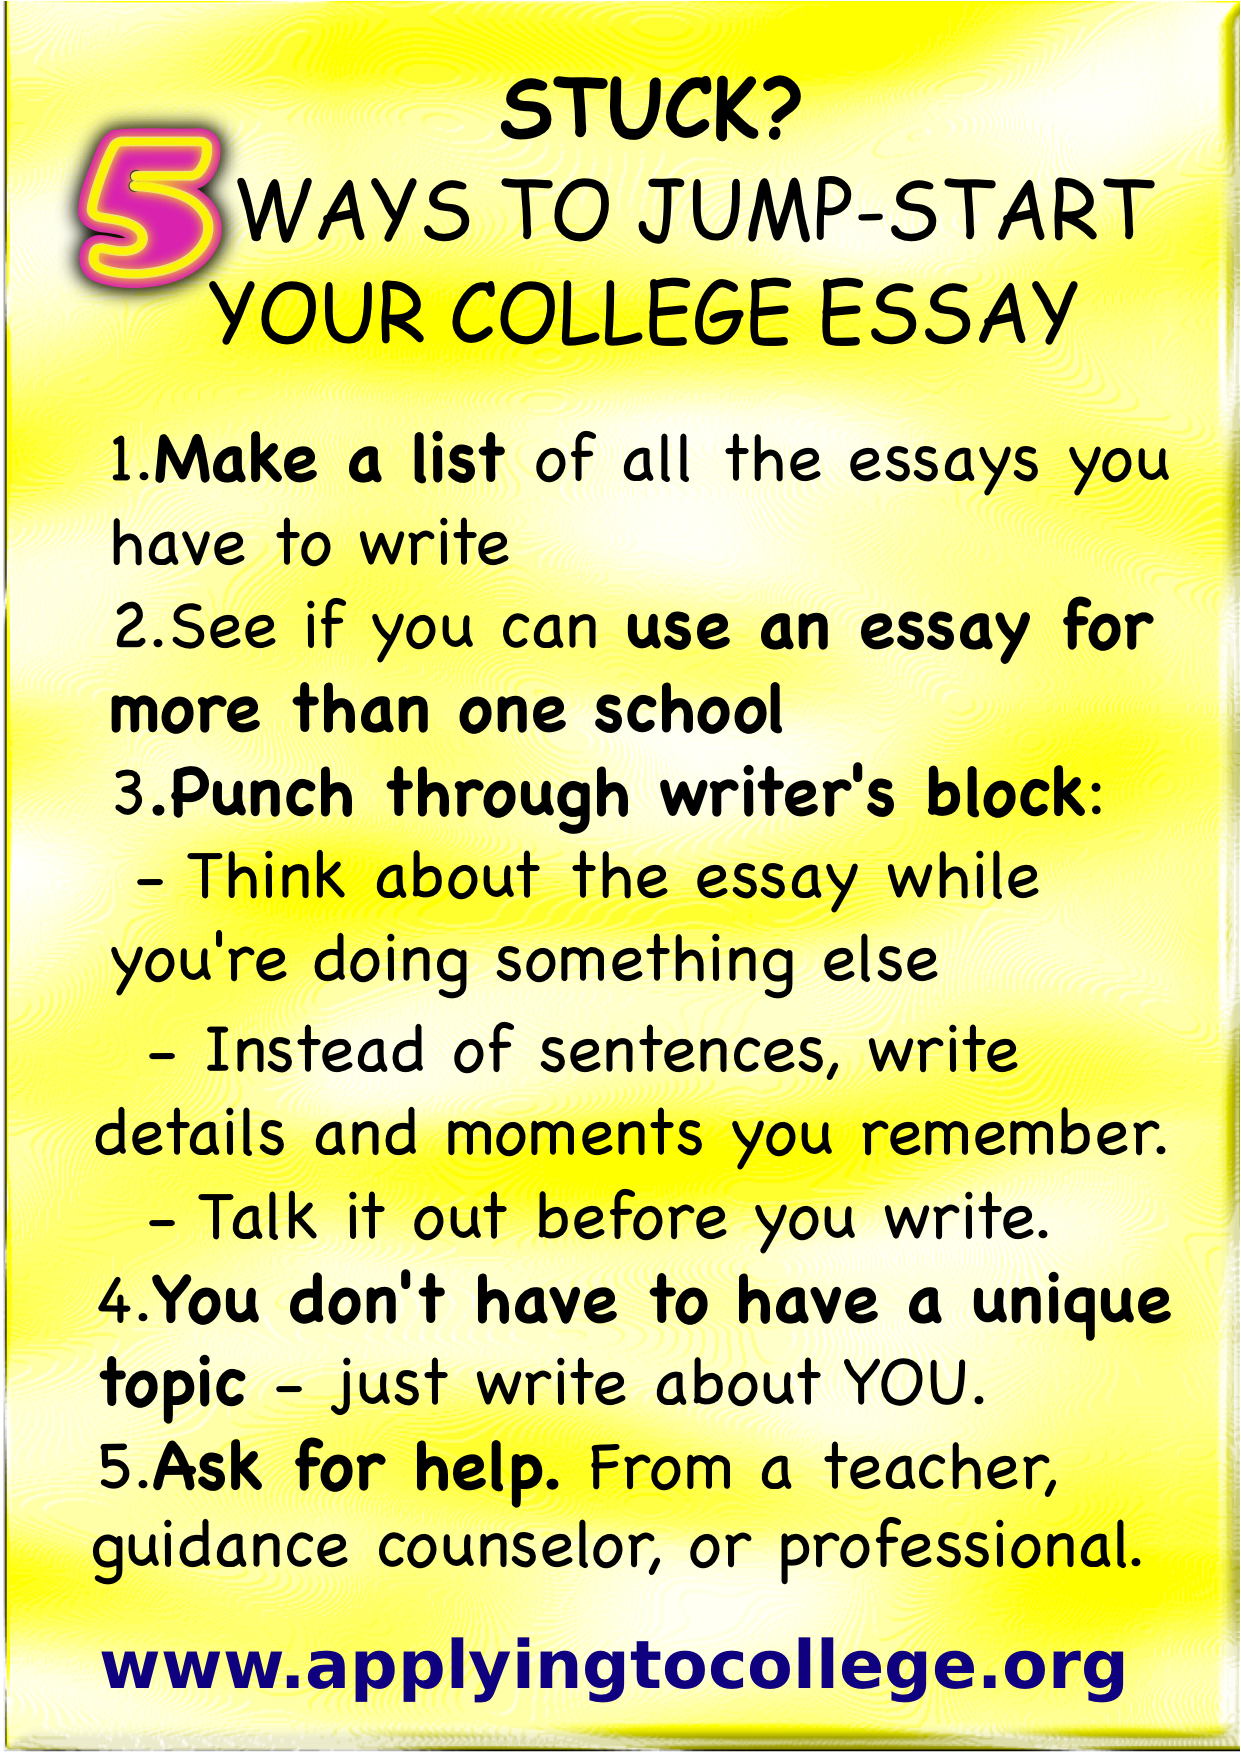 Essay Help Service: Essay Writing Basics and Assignment Help